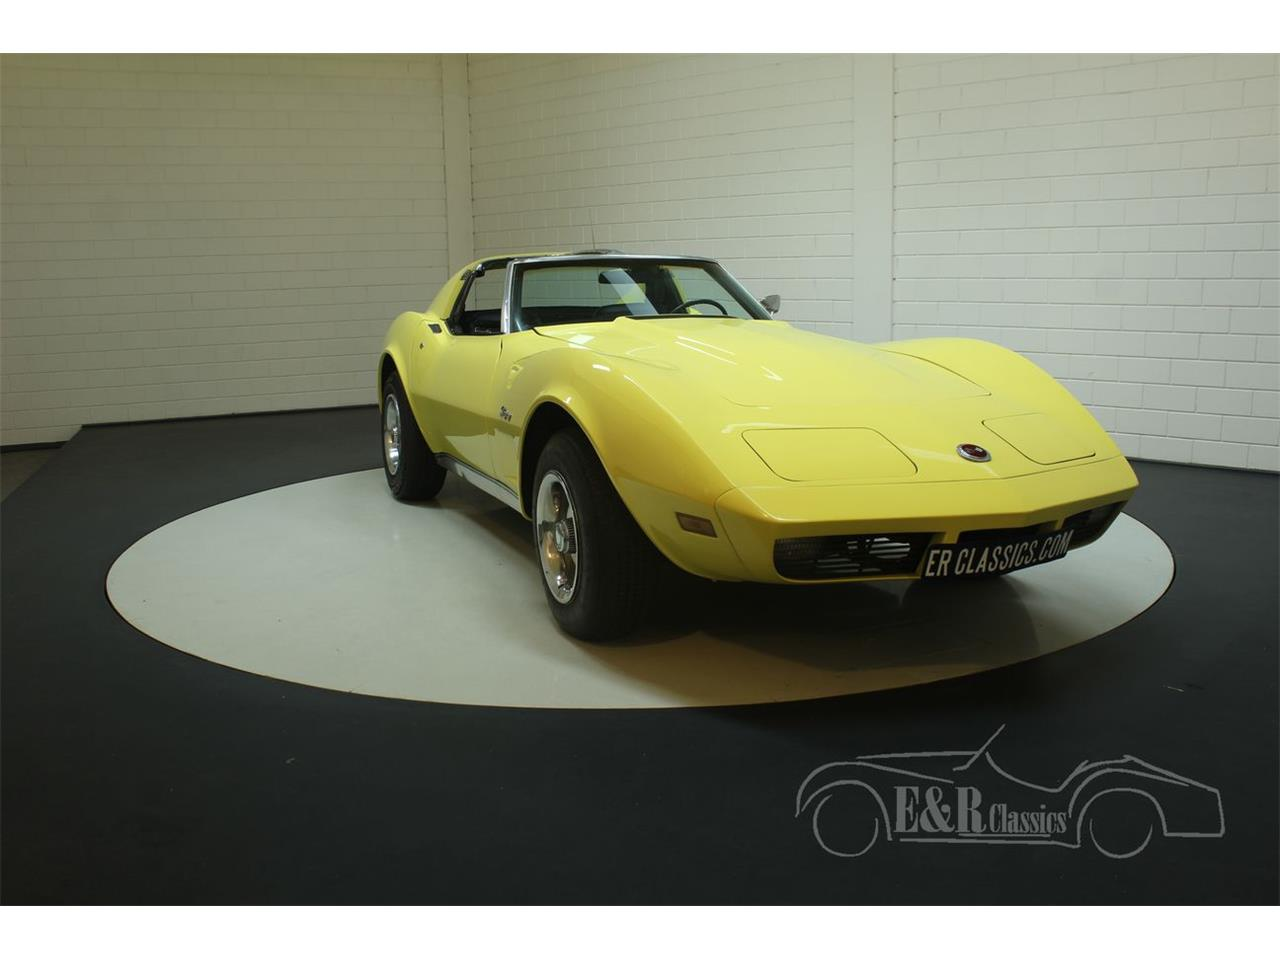 Large Picture of 1974 Corvette located in Waalwijk noord brabant - $33,500.00 Offered by E & R Classics - Q3R0